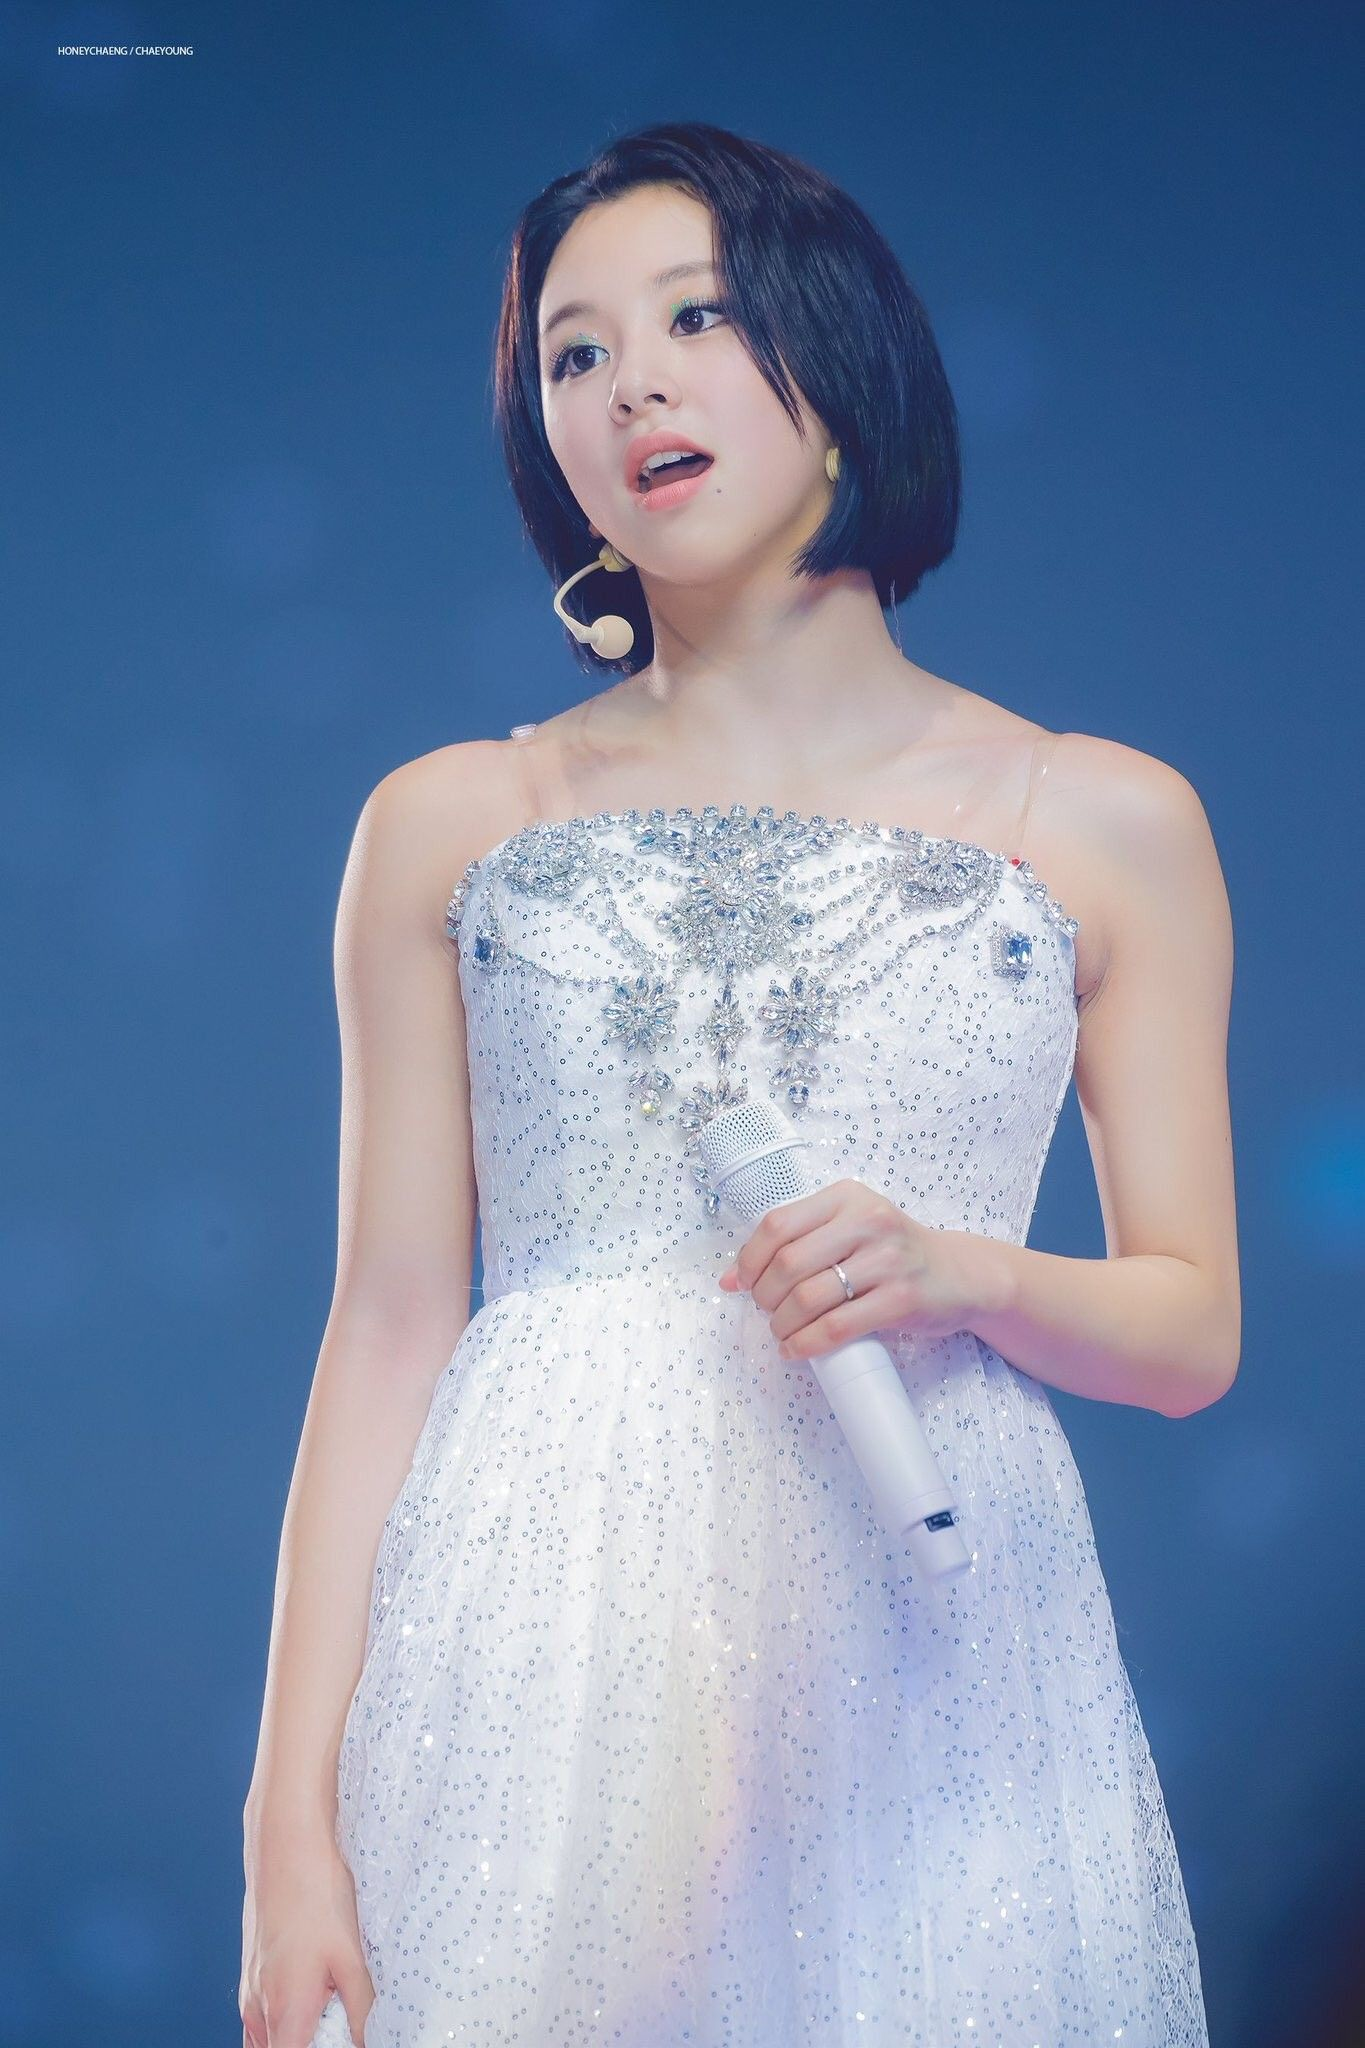 Pin by 𝕂ℙ𝕠𝕡 𝕀𝕕𝕠𝕝𝕤 on Twice_Chaeyoung (채영) Strapless